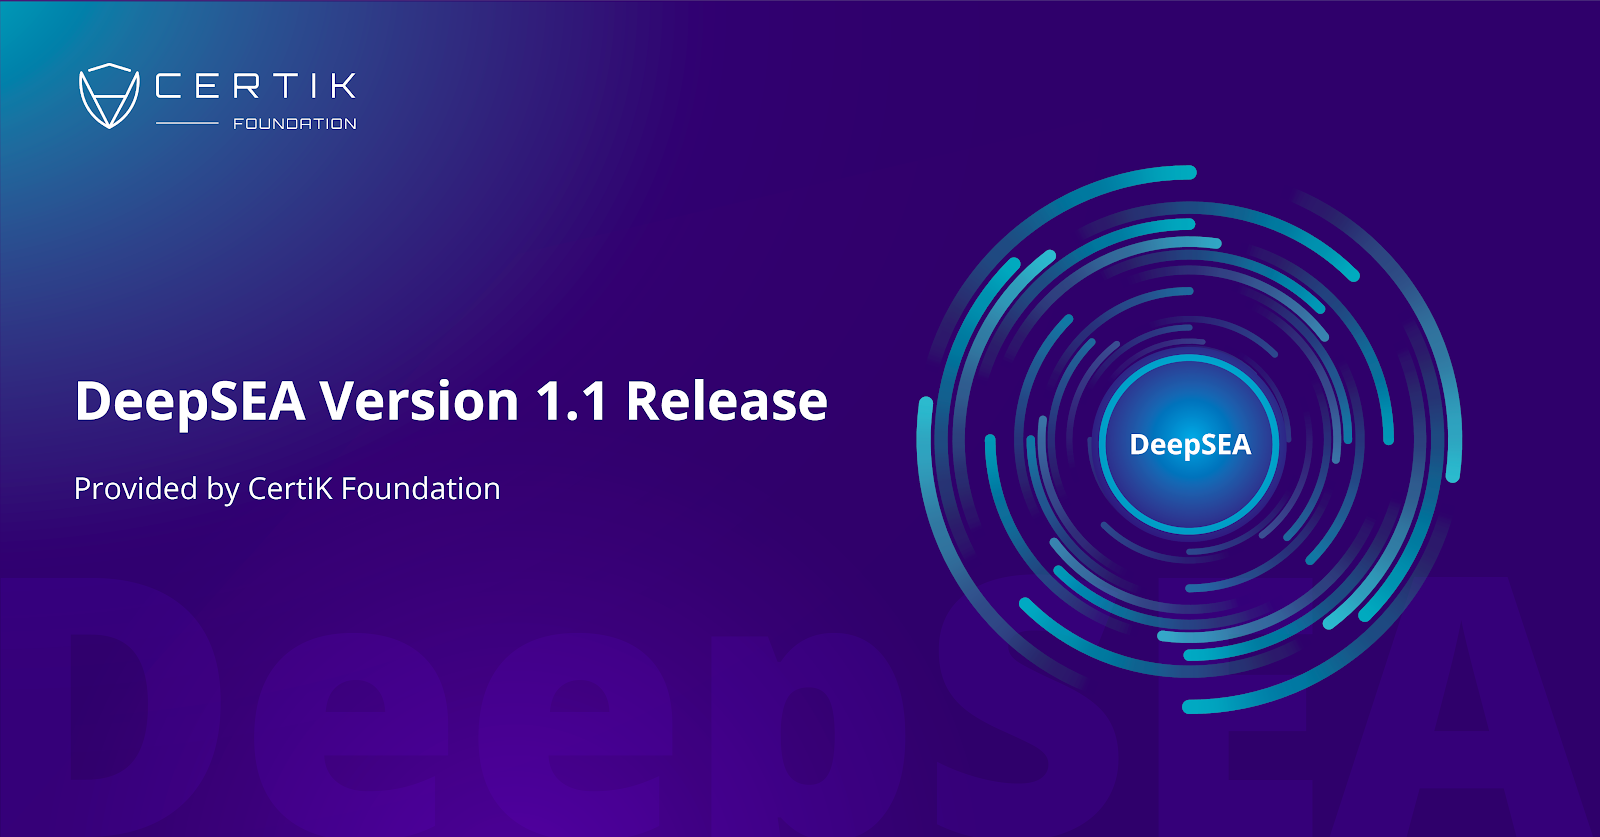 DeepSEA Version 1.1 Release